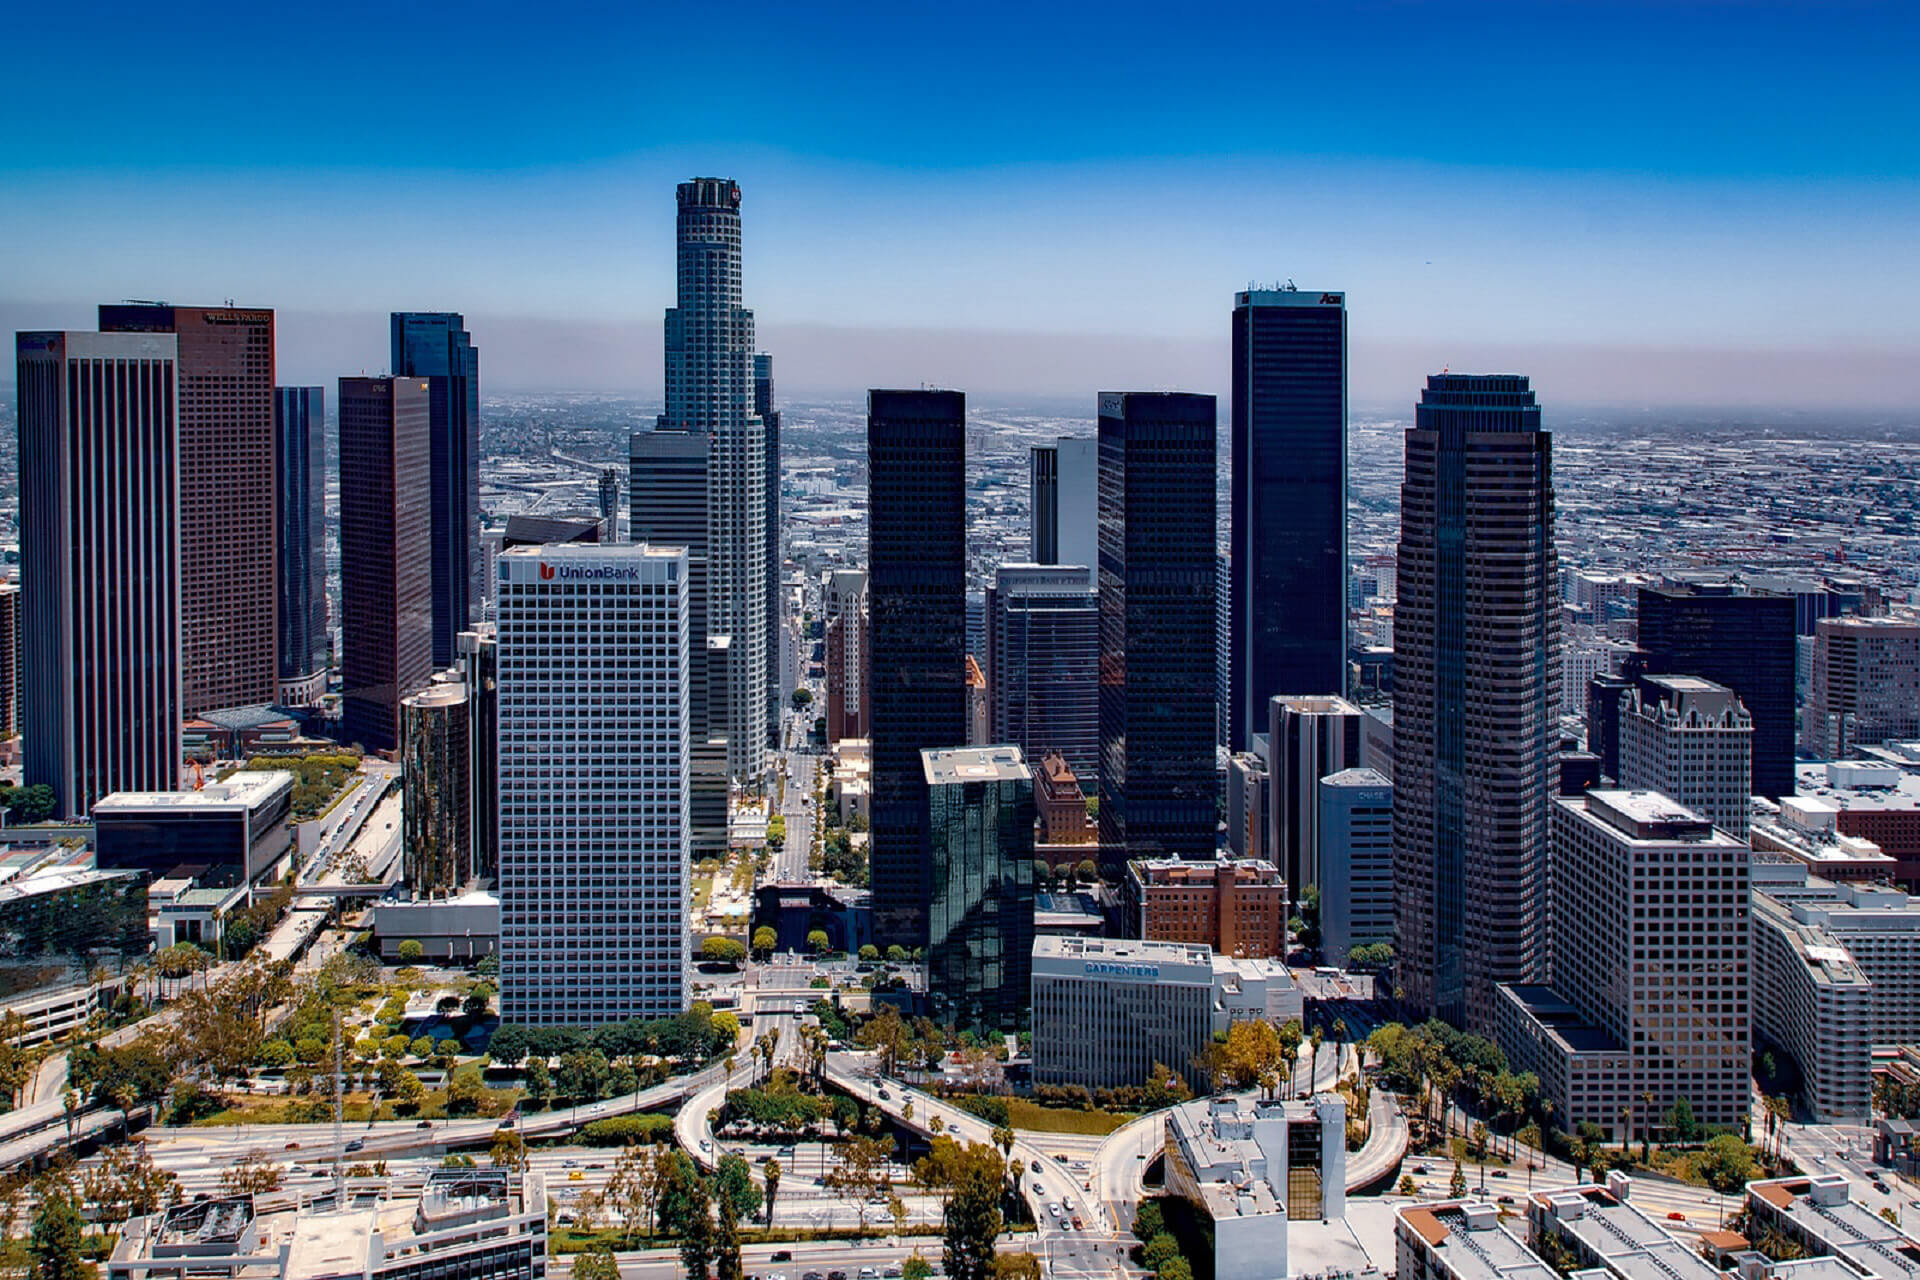 Los Angeles - Destinations Where Summer Never Ends